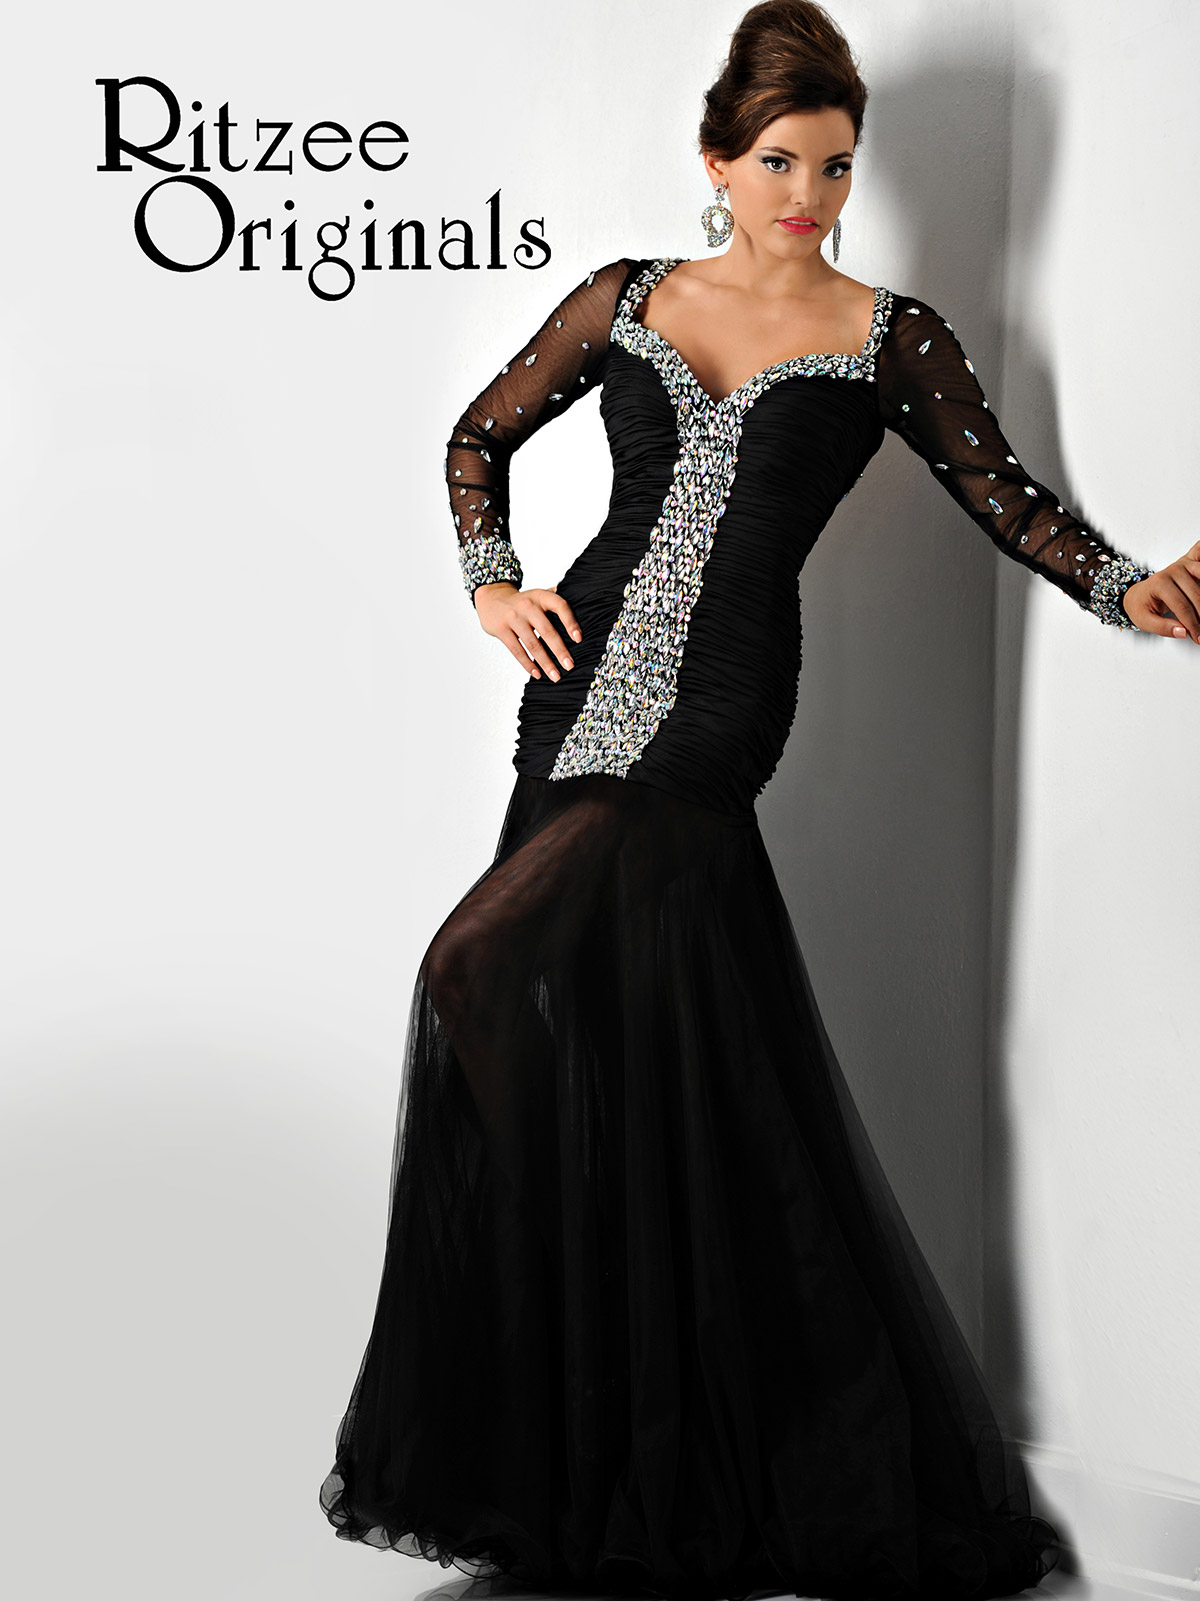 Long Sleeved Pageant Dresses | Dress images